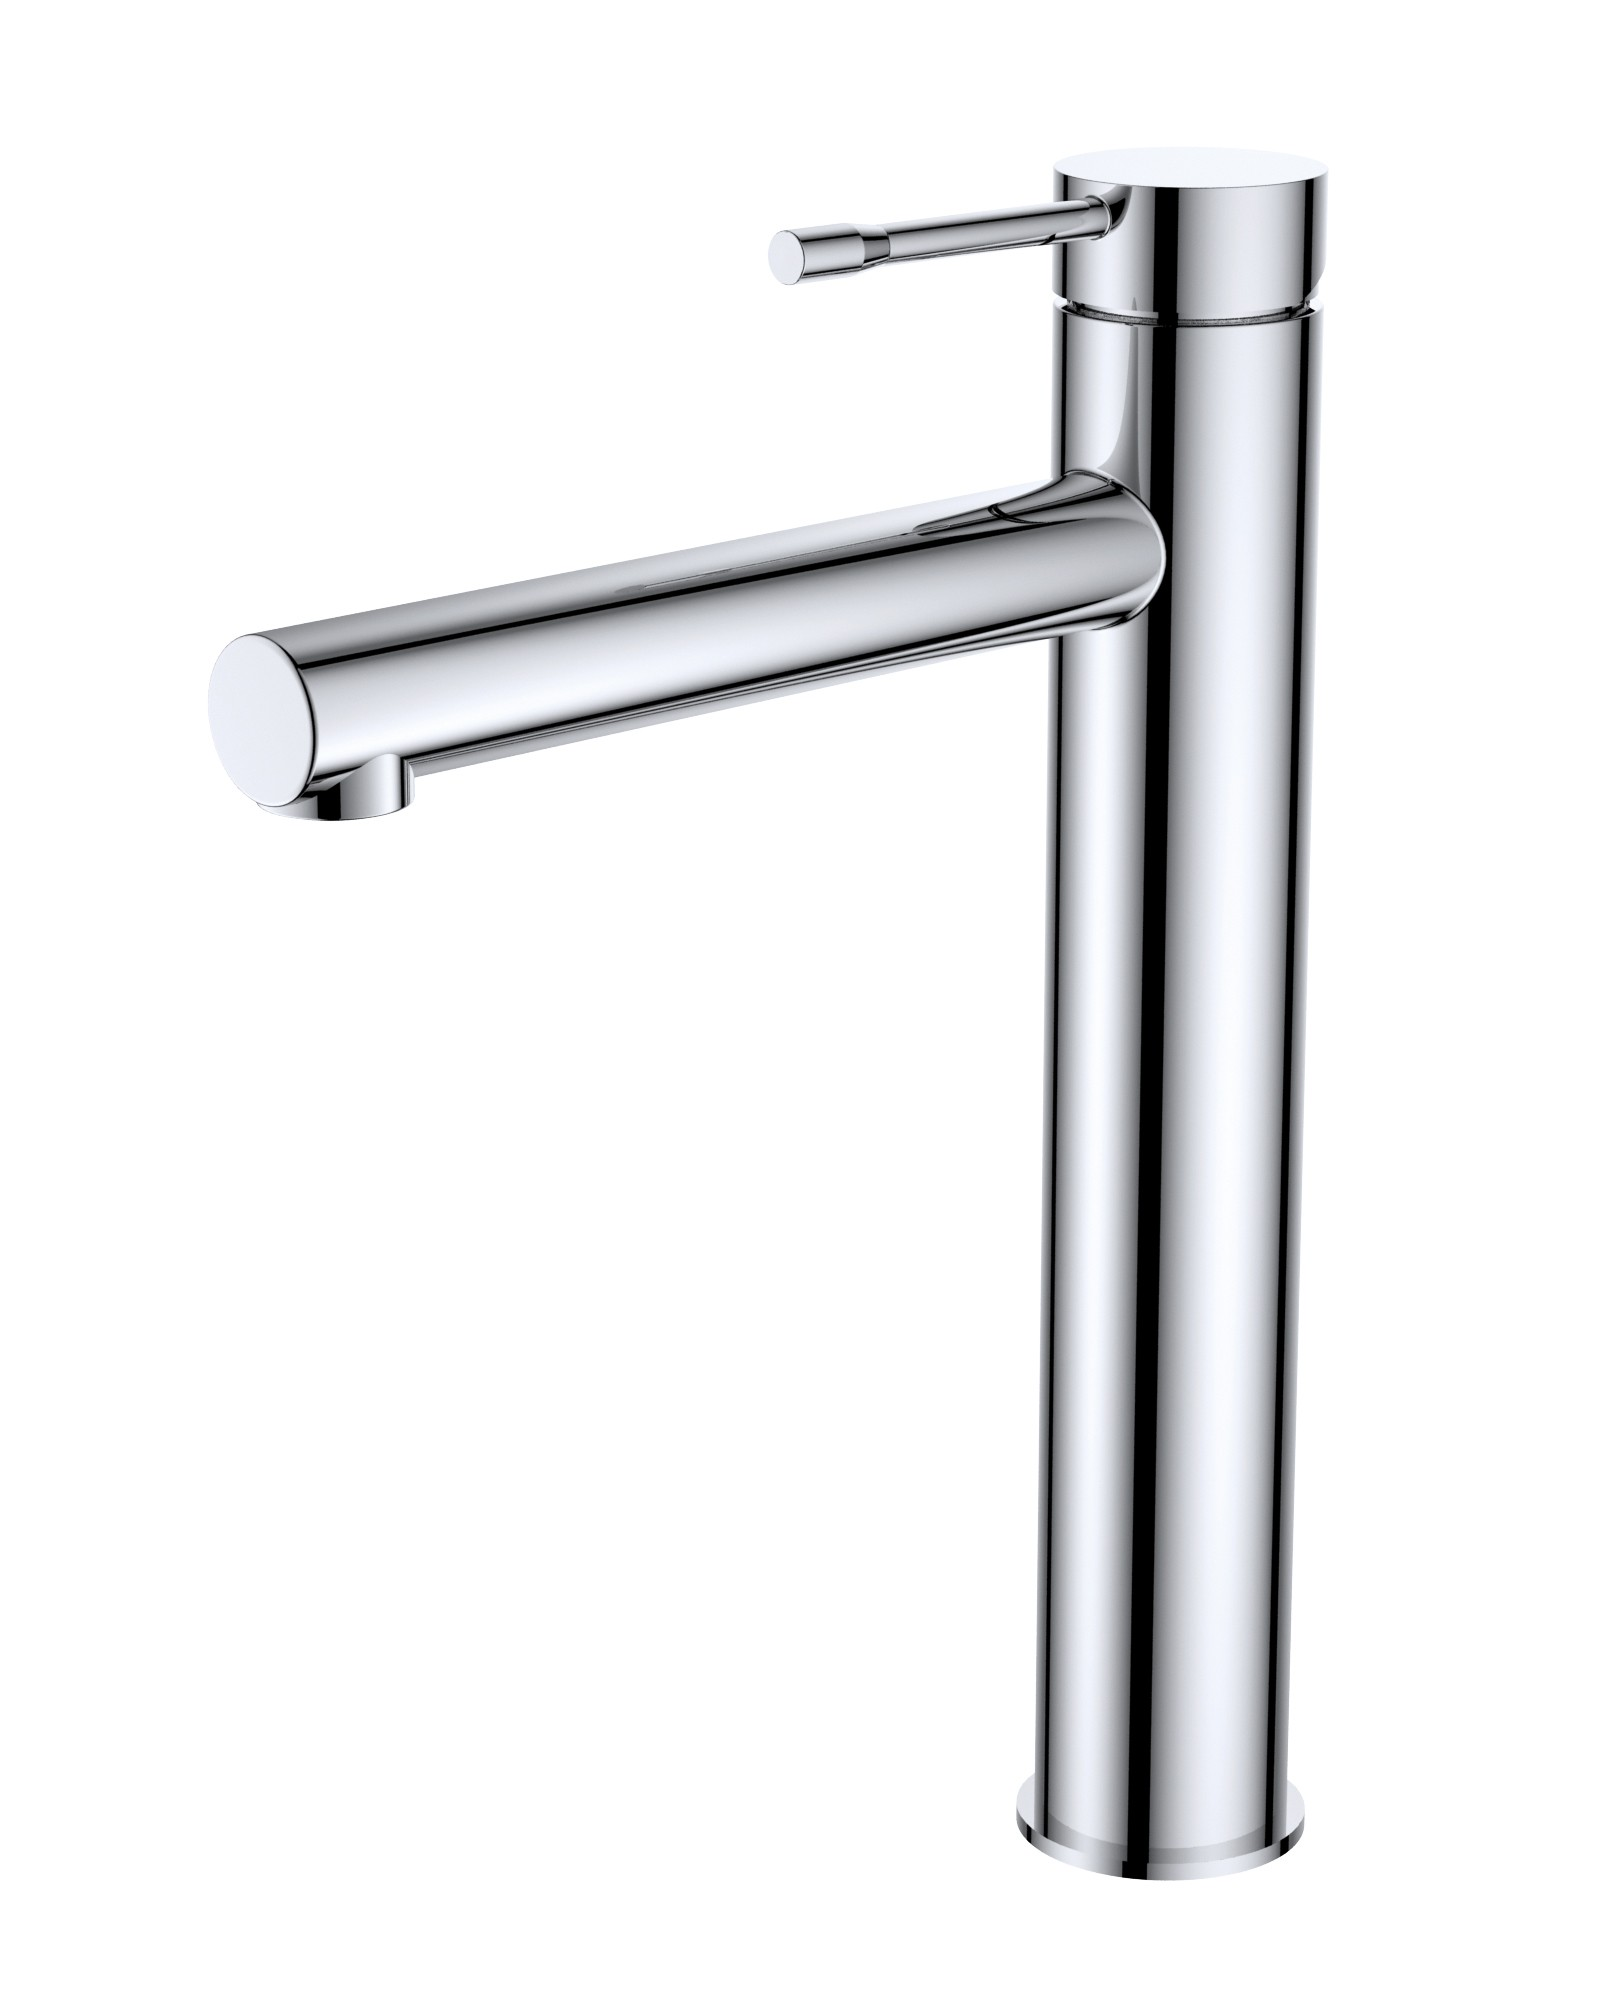 ARGENT FLOW VESSEL BASIN MIXER CHROME